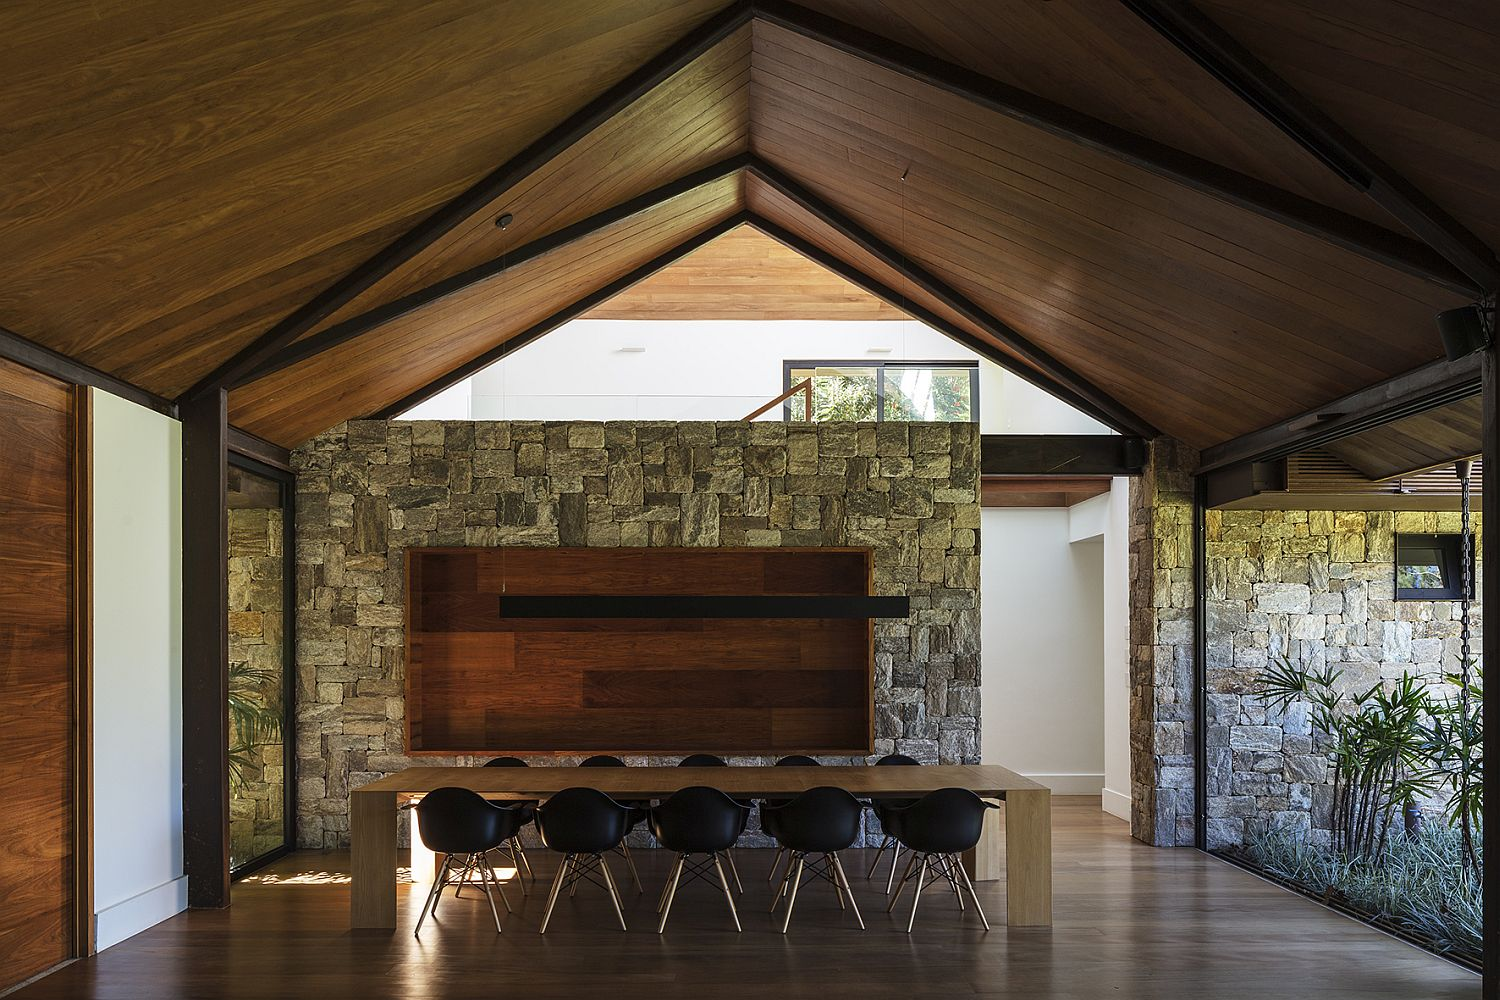 Stone-walls-make-an-appearance-inside-the-house-as-well